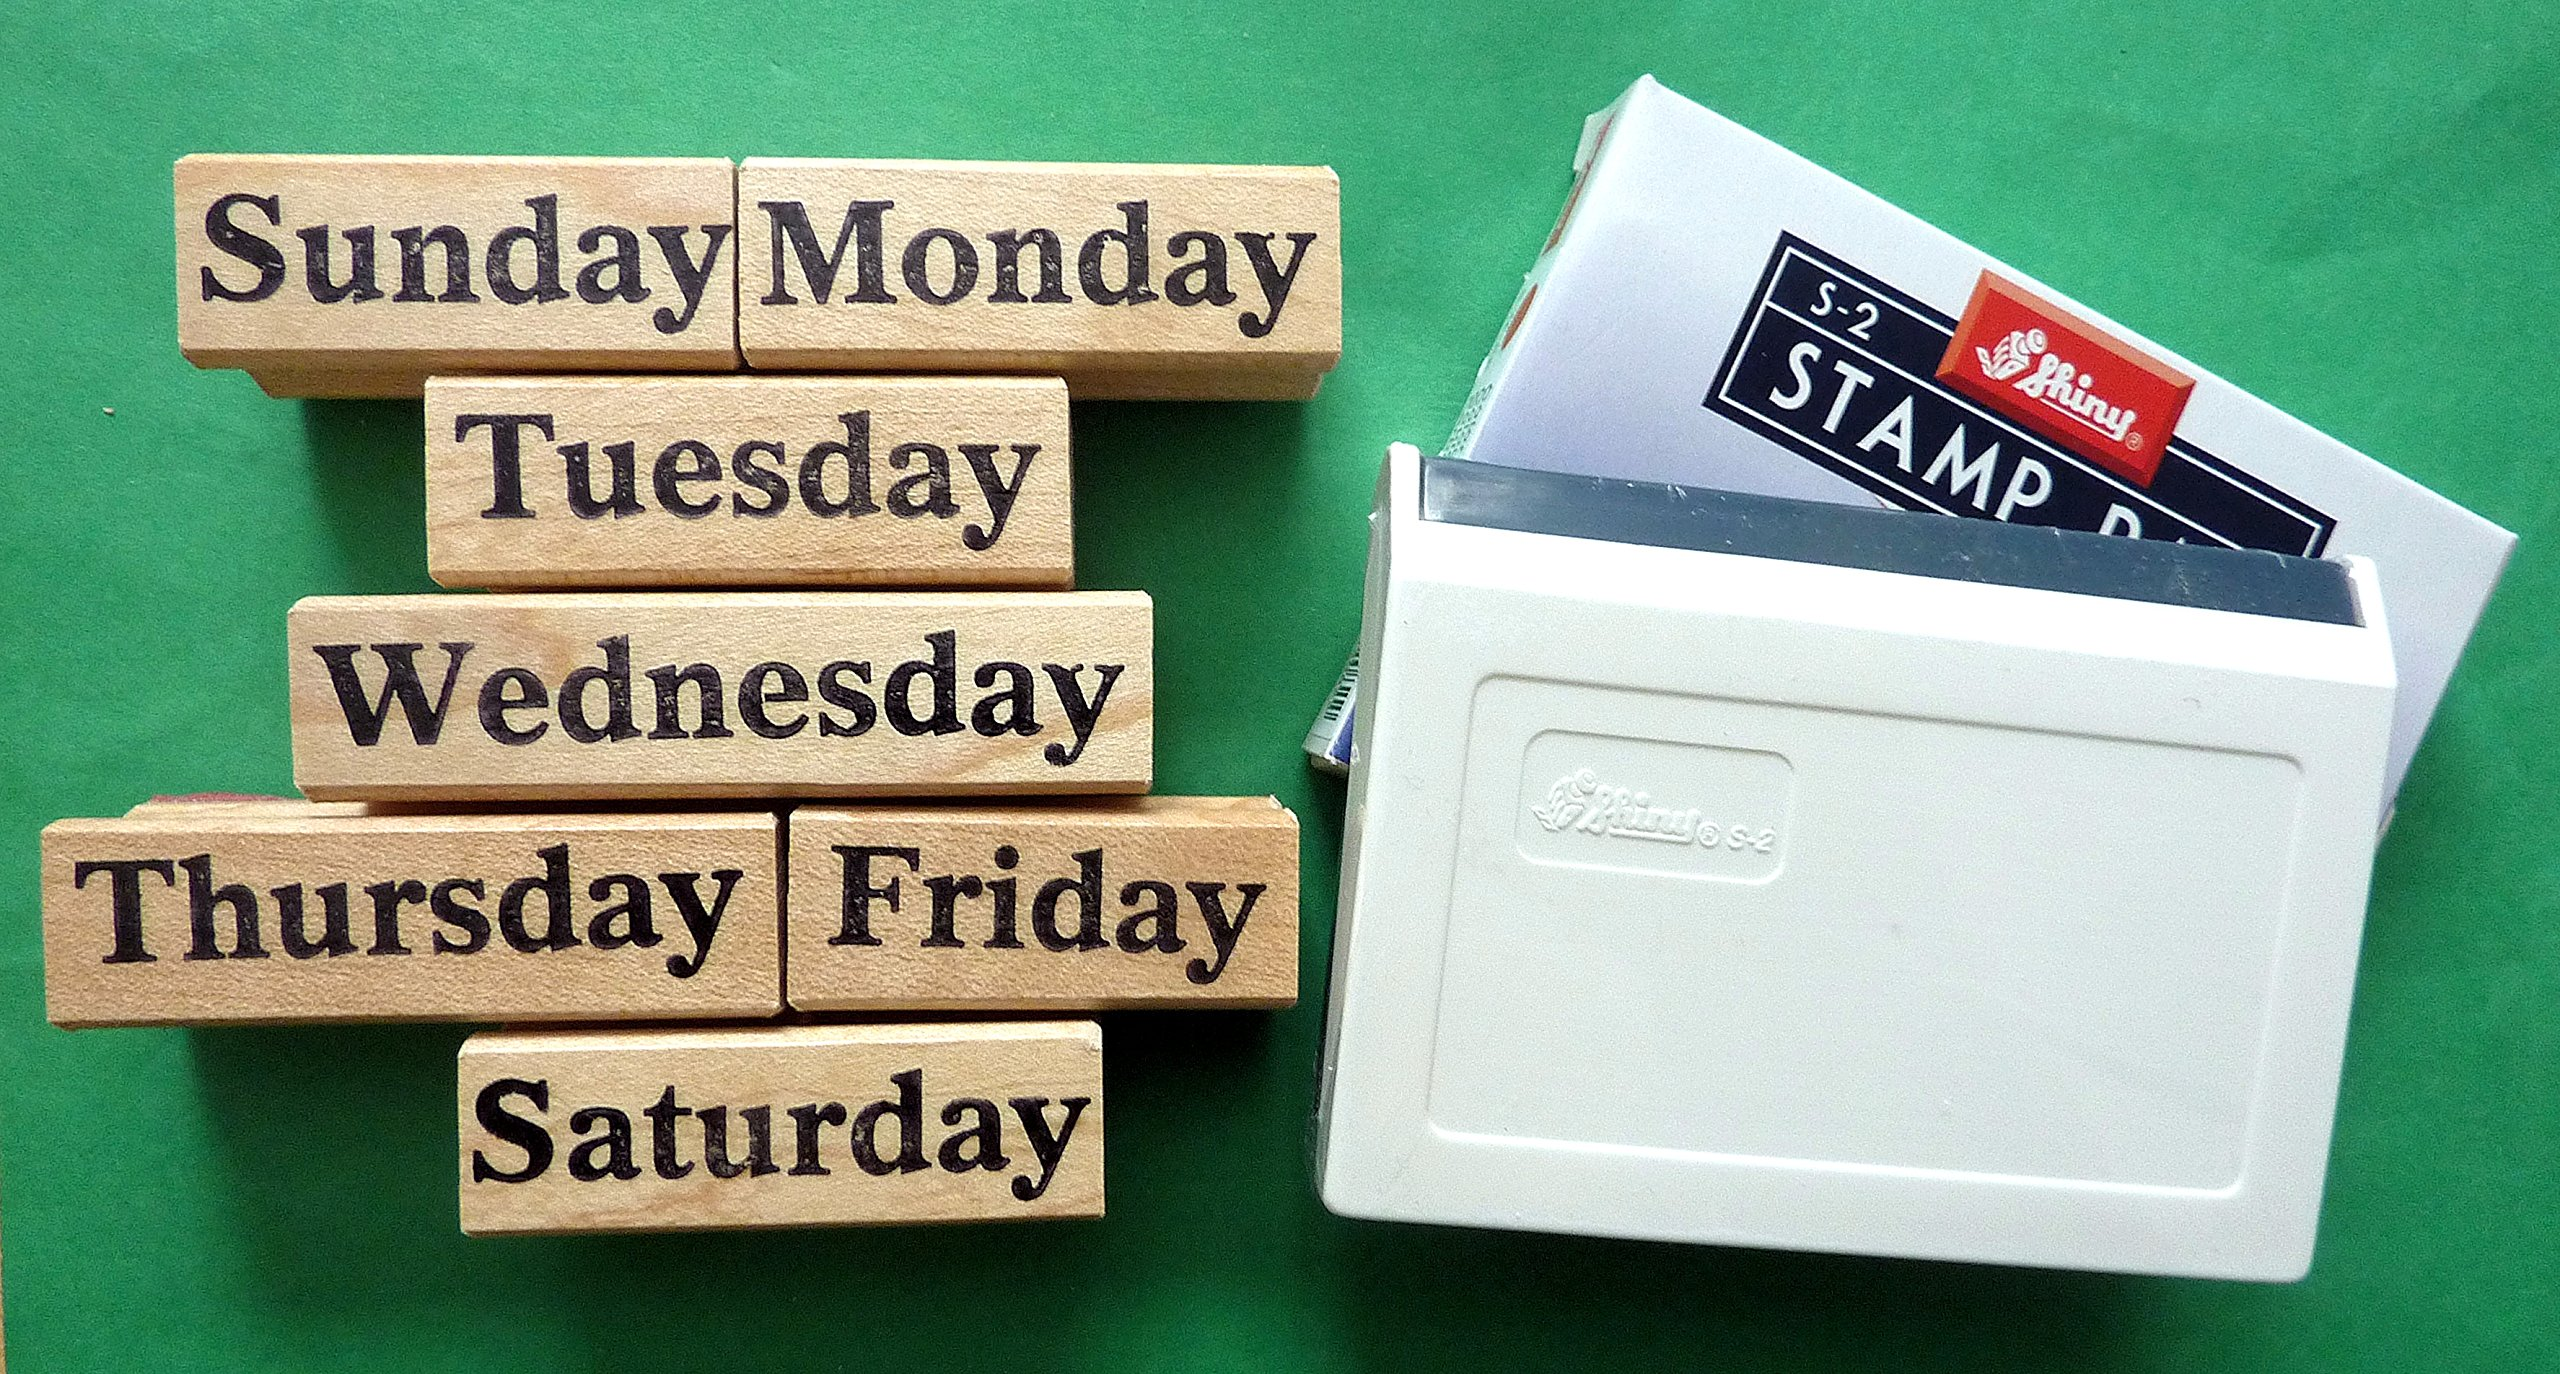 Days of the Week Teacher's Rubber Stamp Set of 7, with Stamp Pad